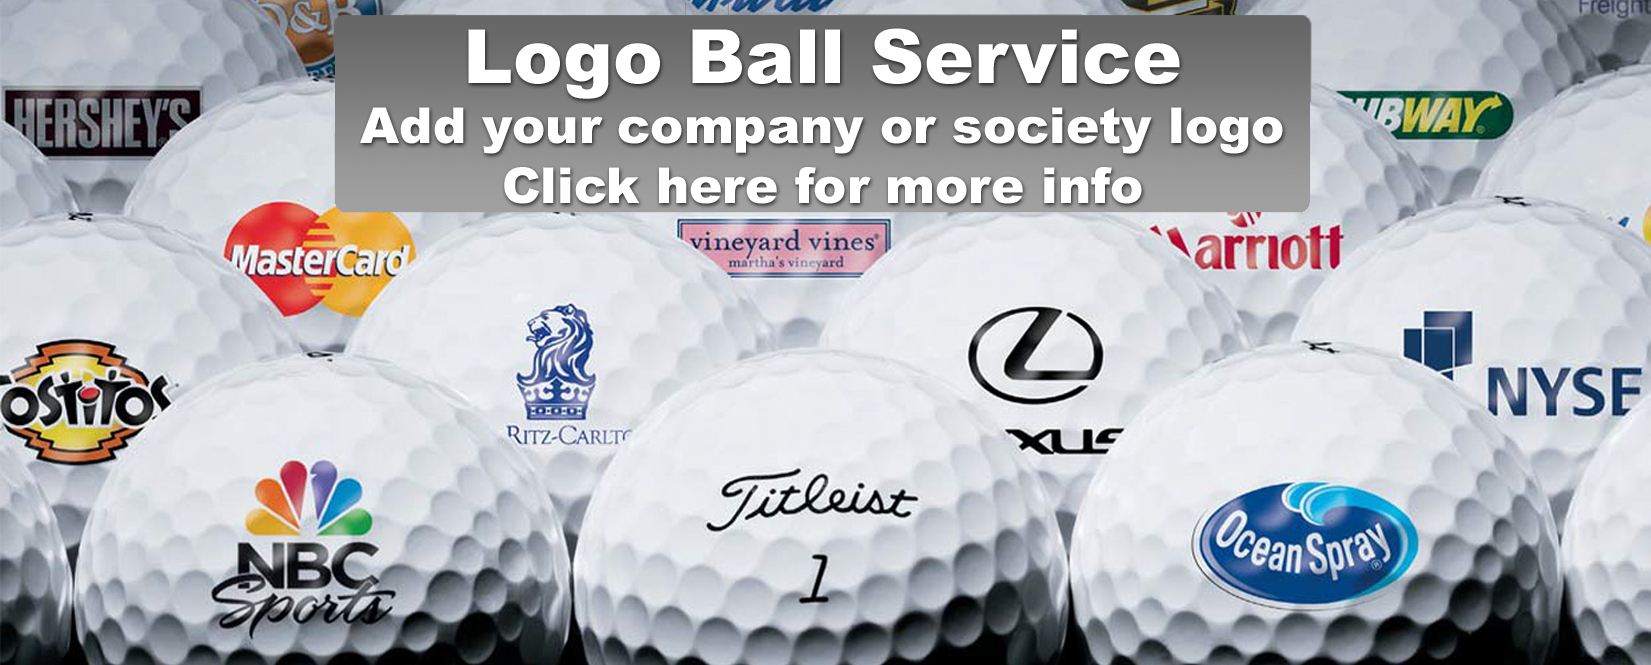 Titleist Logo Ball Service